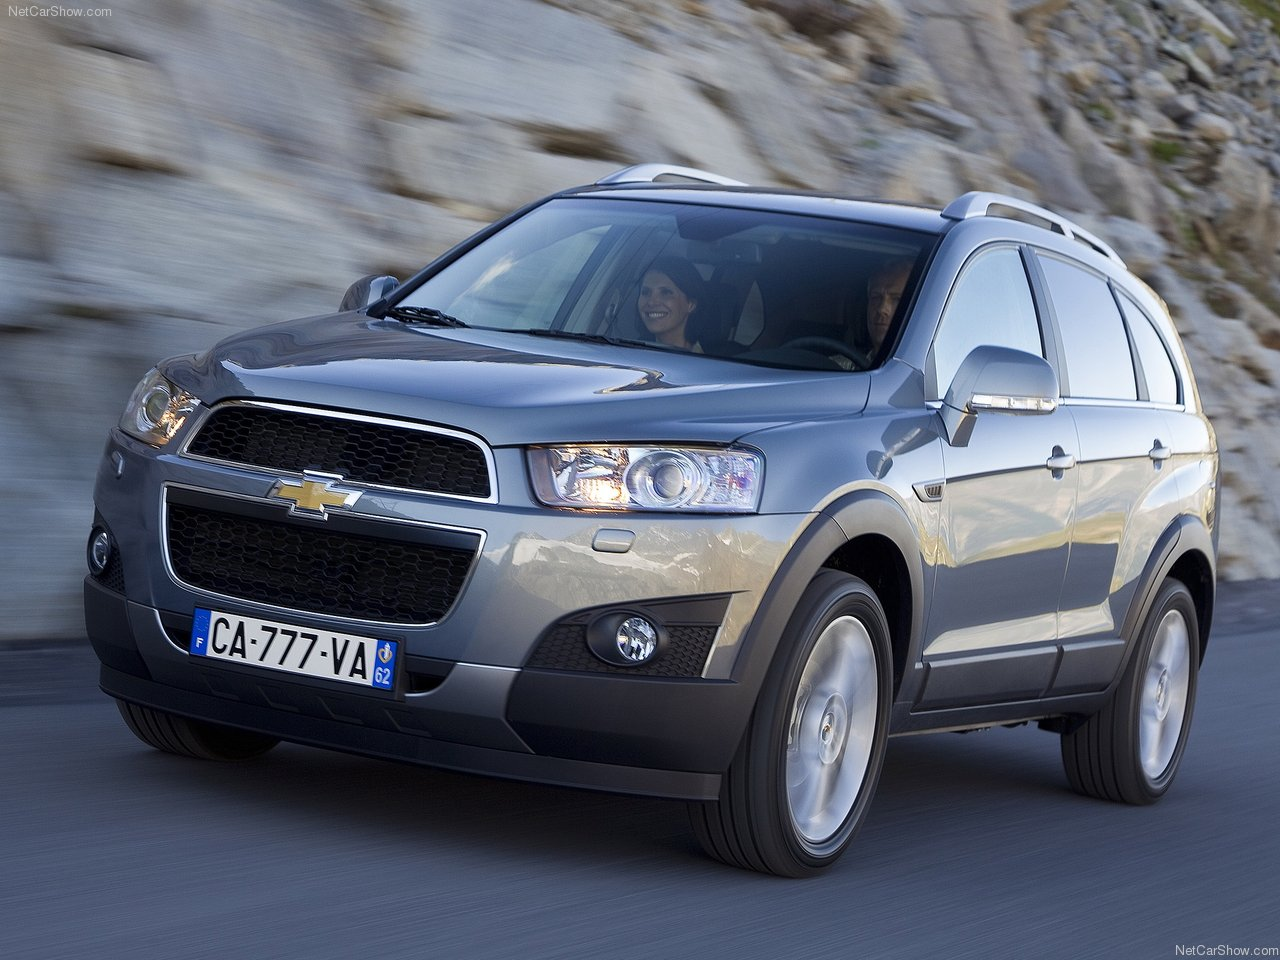 2012 Chevrolet Captiva Chevrolet Autos Spain